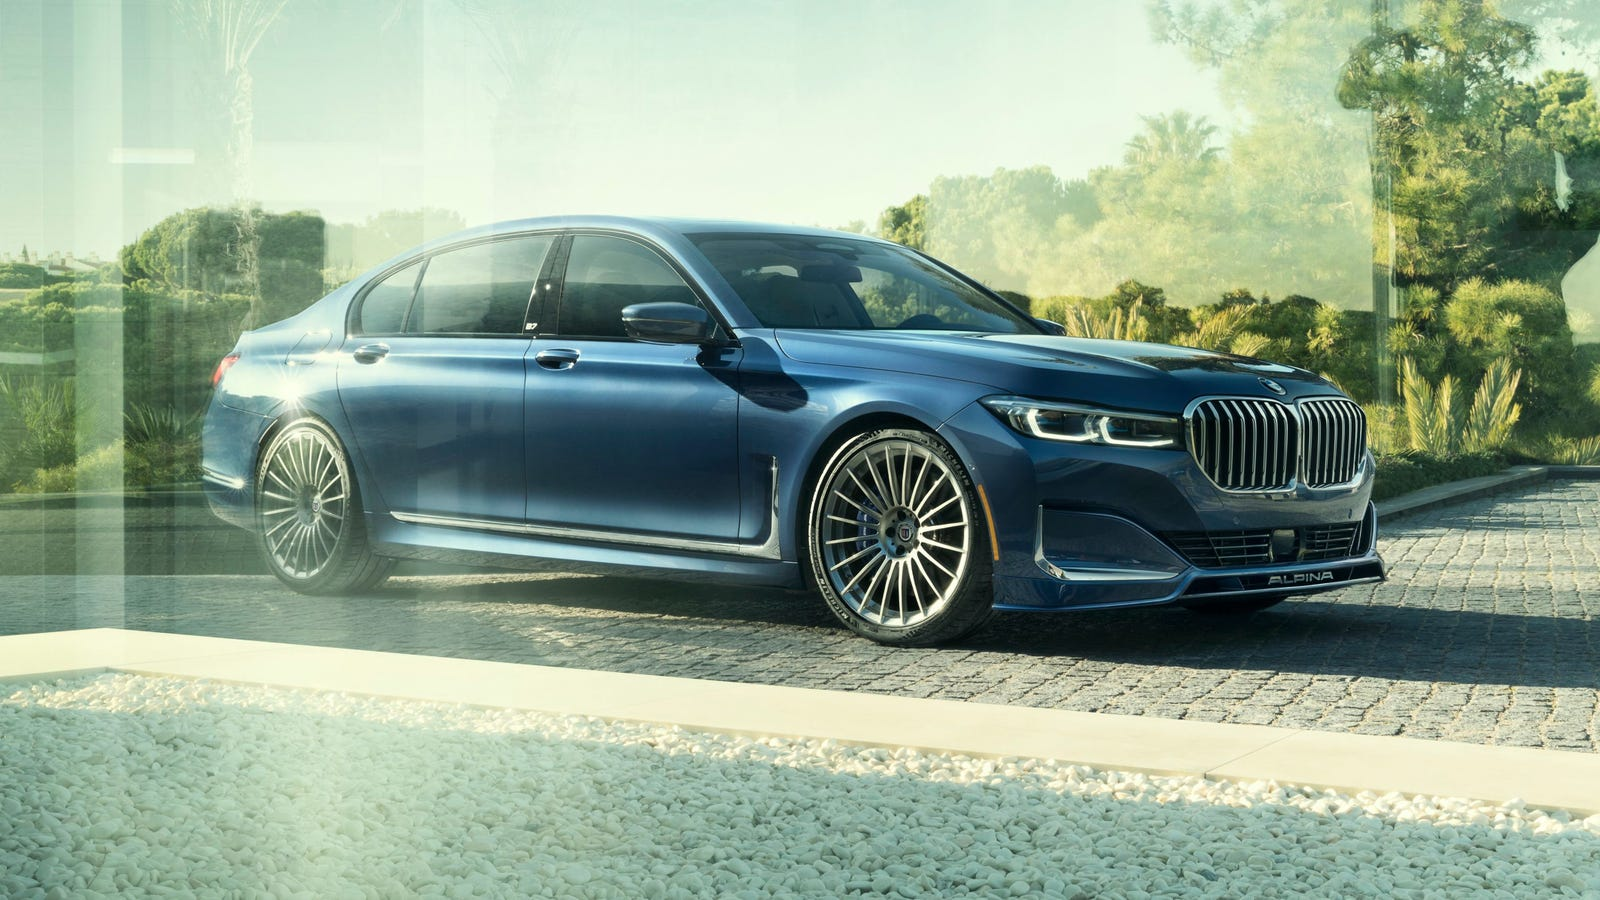 The 2020 Alpina B7 is a 4,855 Pound Luxury Sedan With BMW Claiming 205 MPH